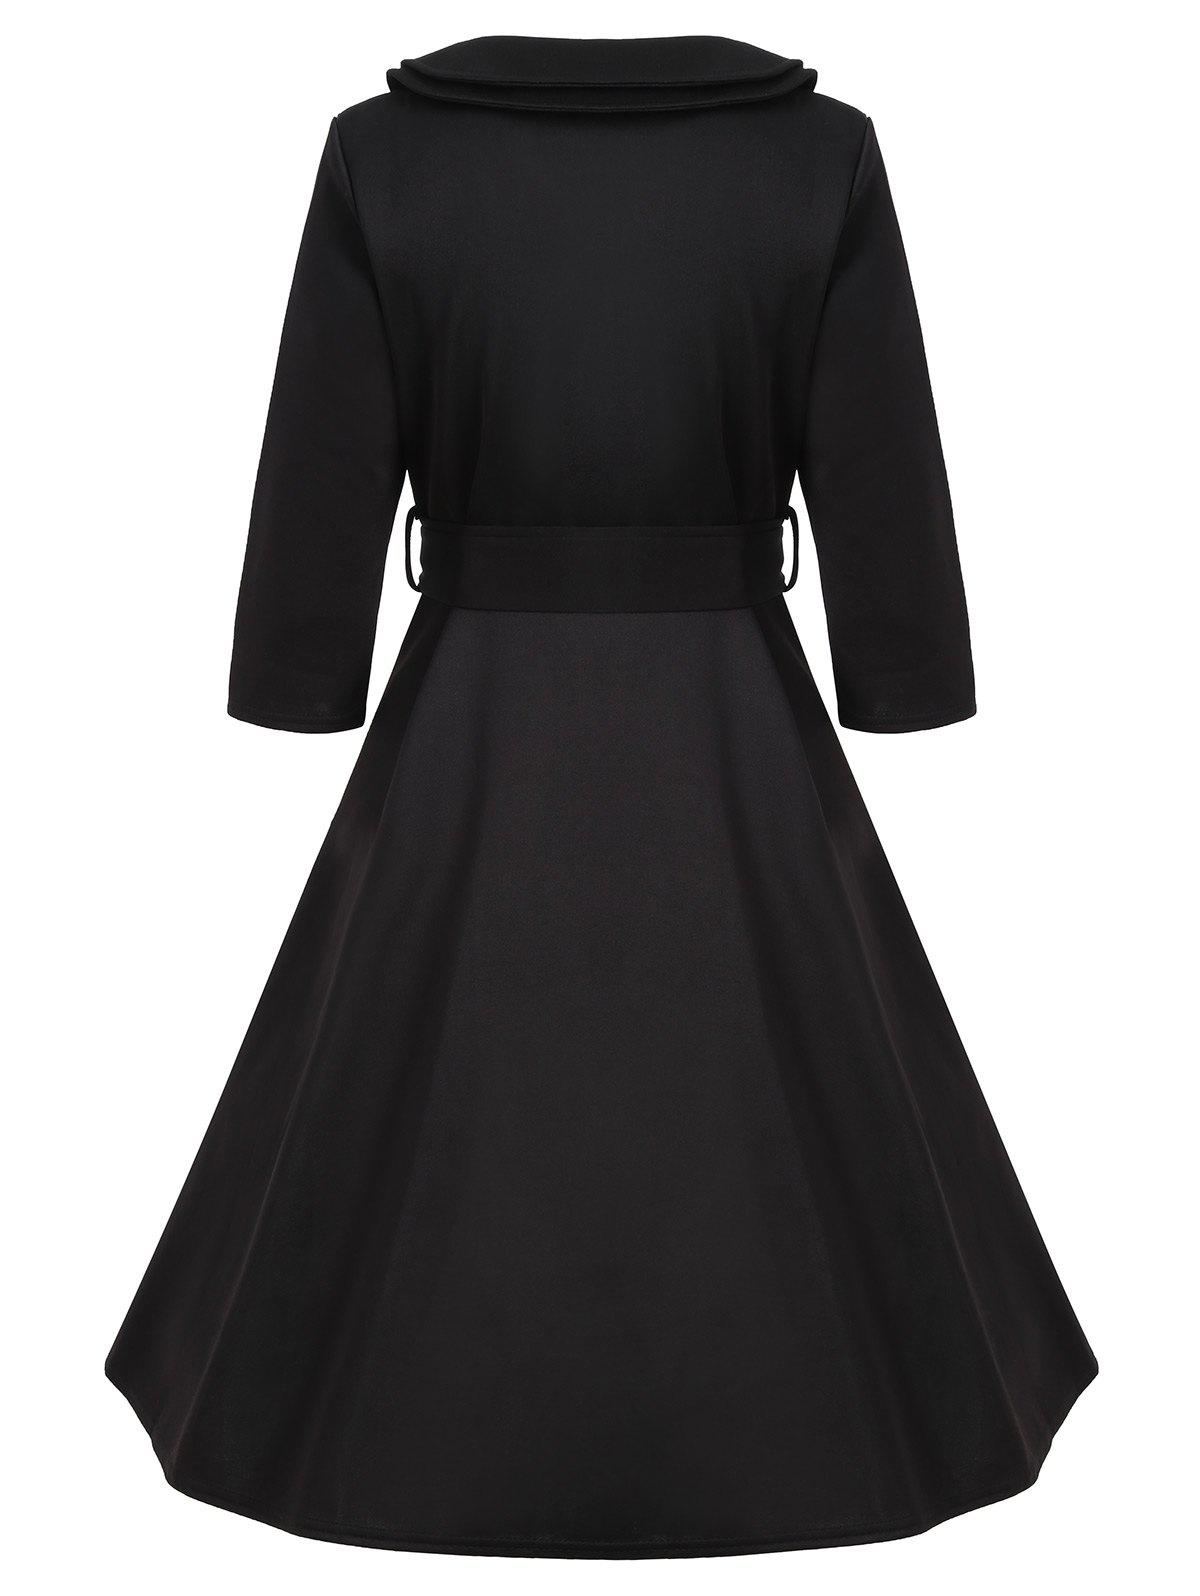 Buttoned A Line Vintage Dress with Belt - BLACK XL